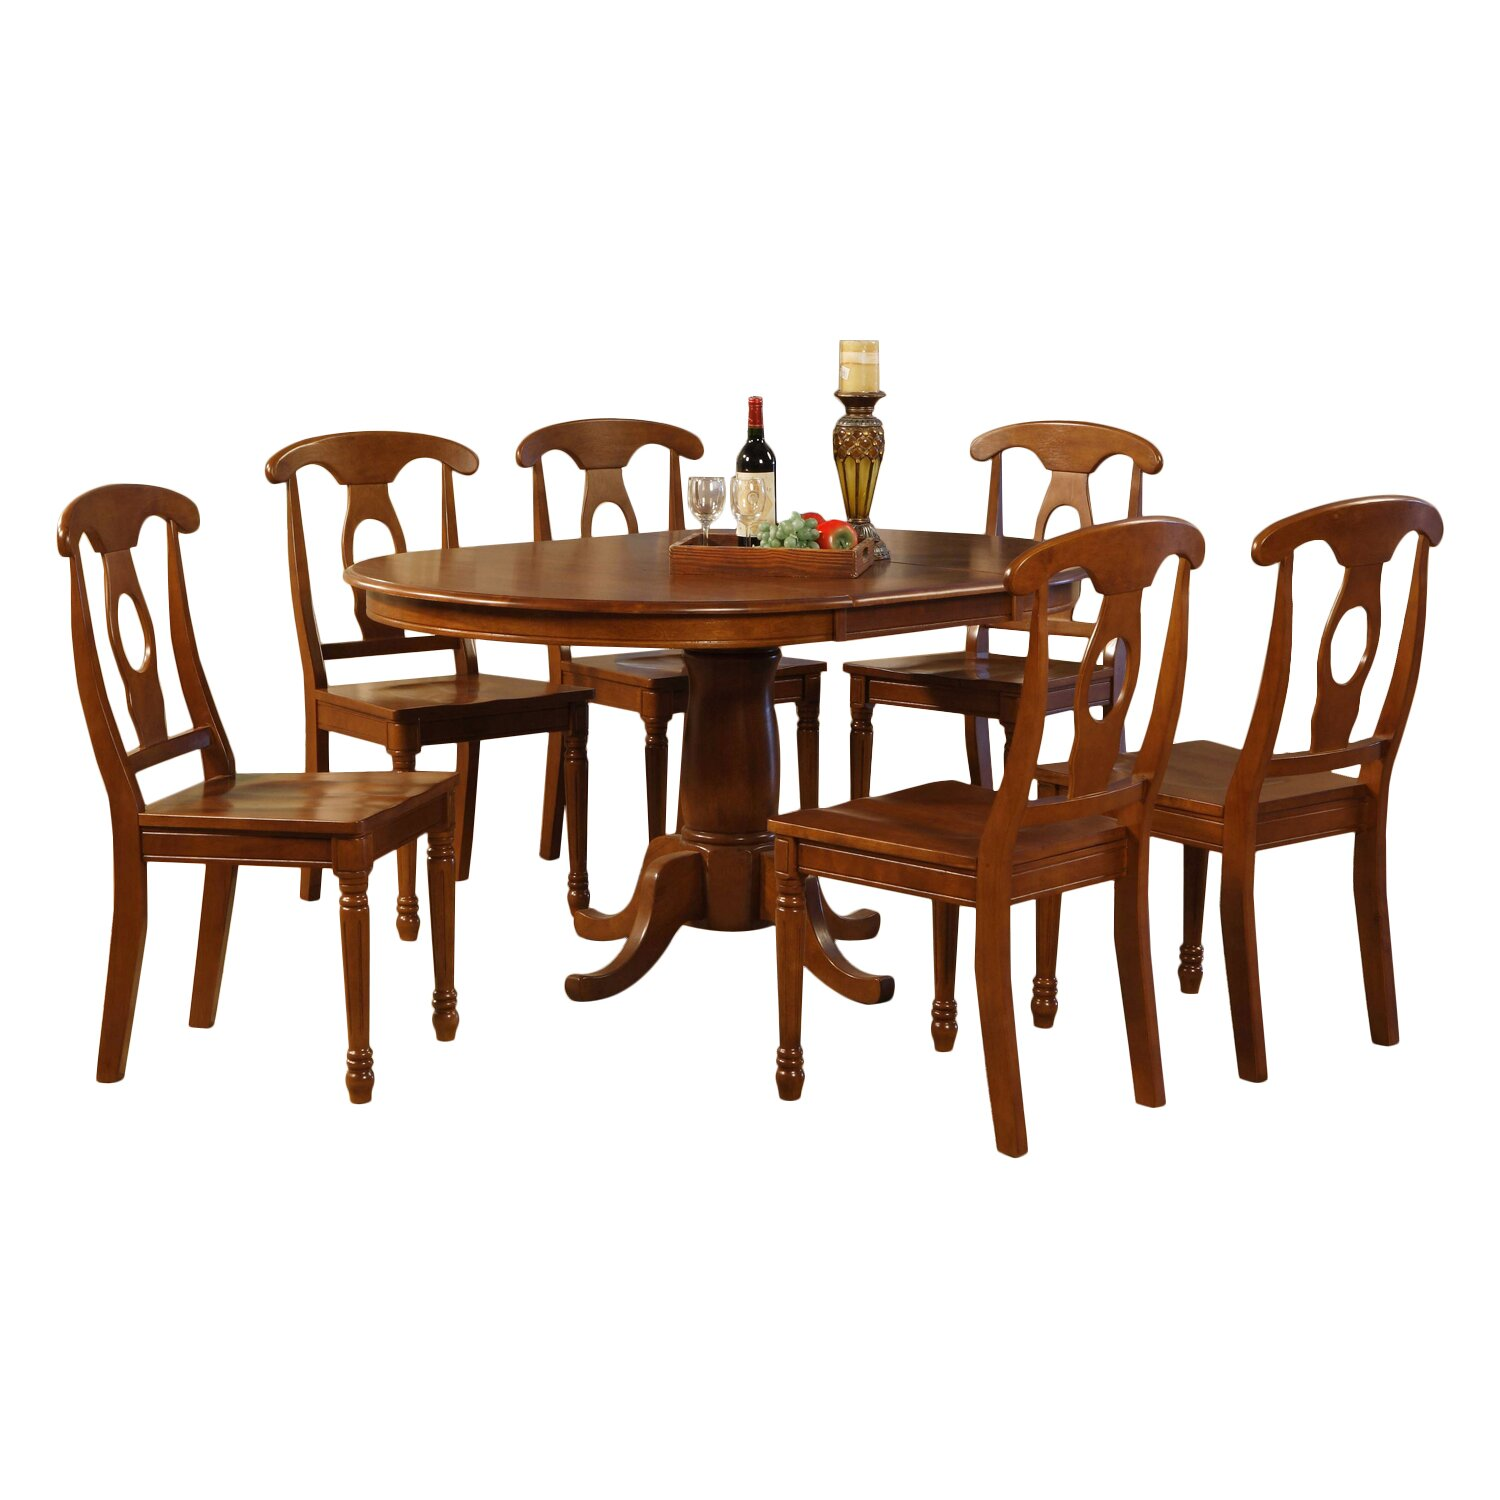 Darby home co stella 7 piece dining set reviews wayfair for 7 piece dining set